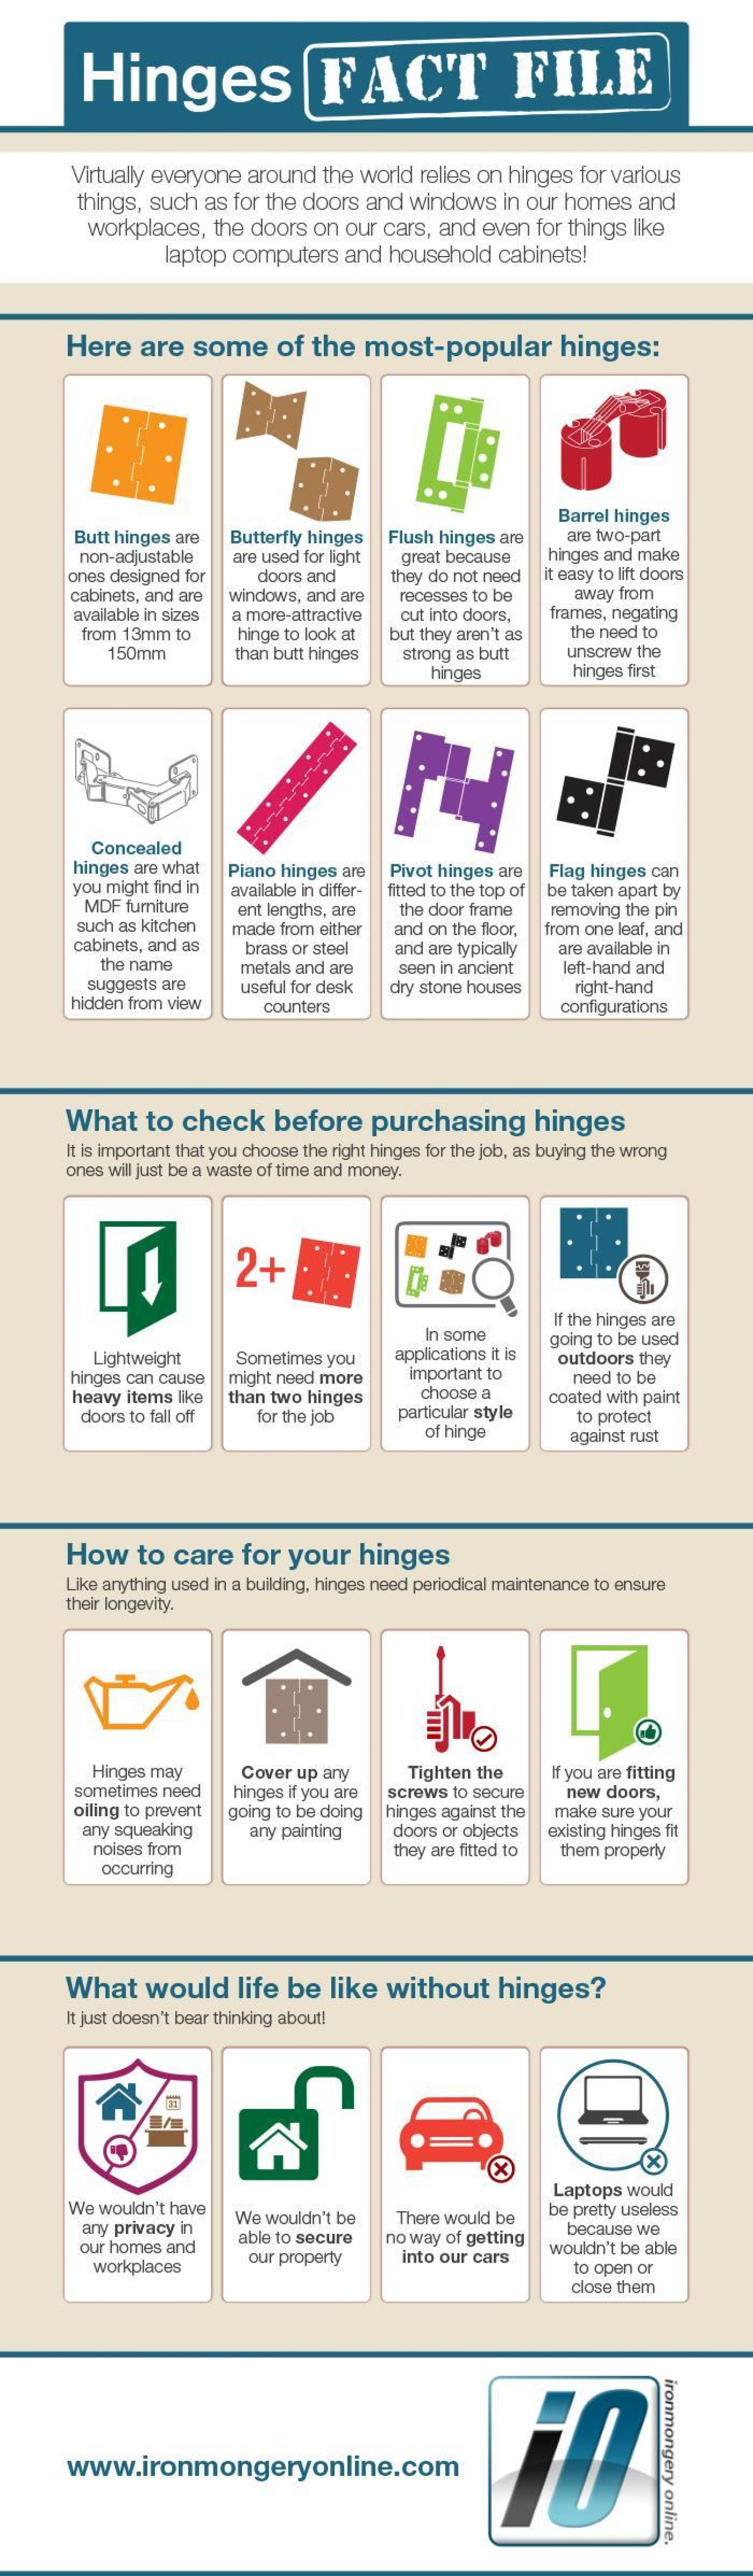 Hinges Fact File Infographic